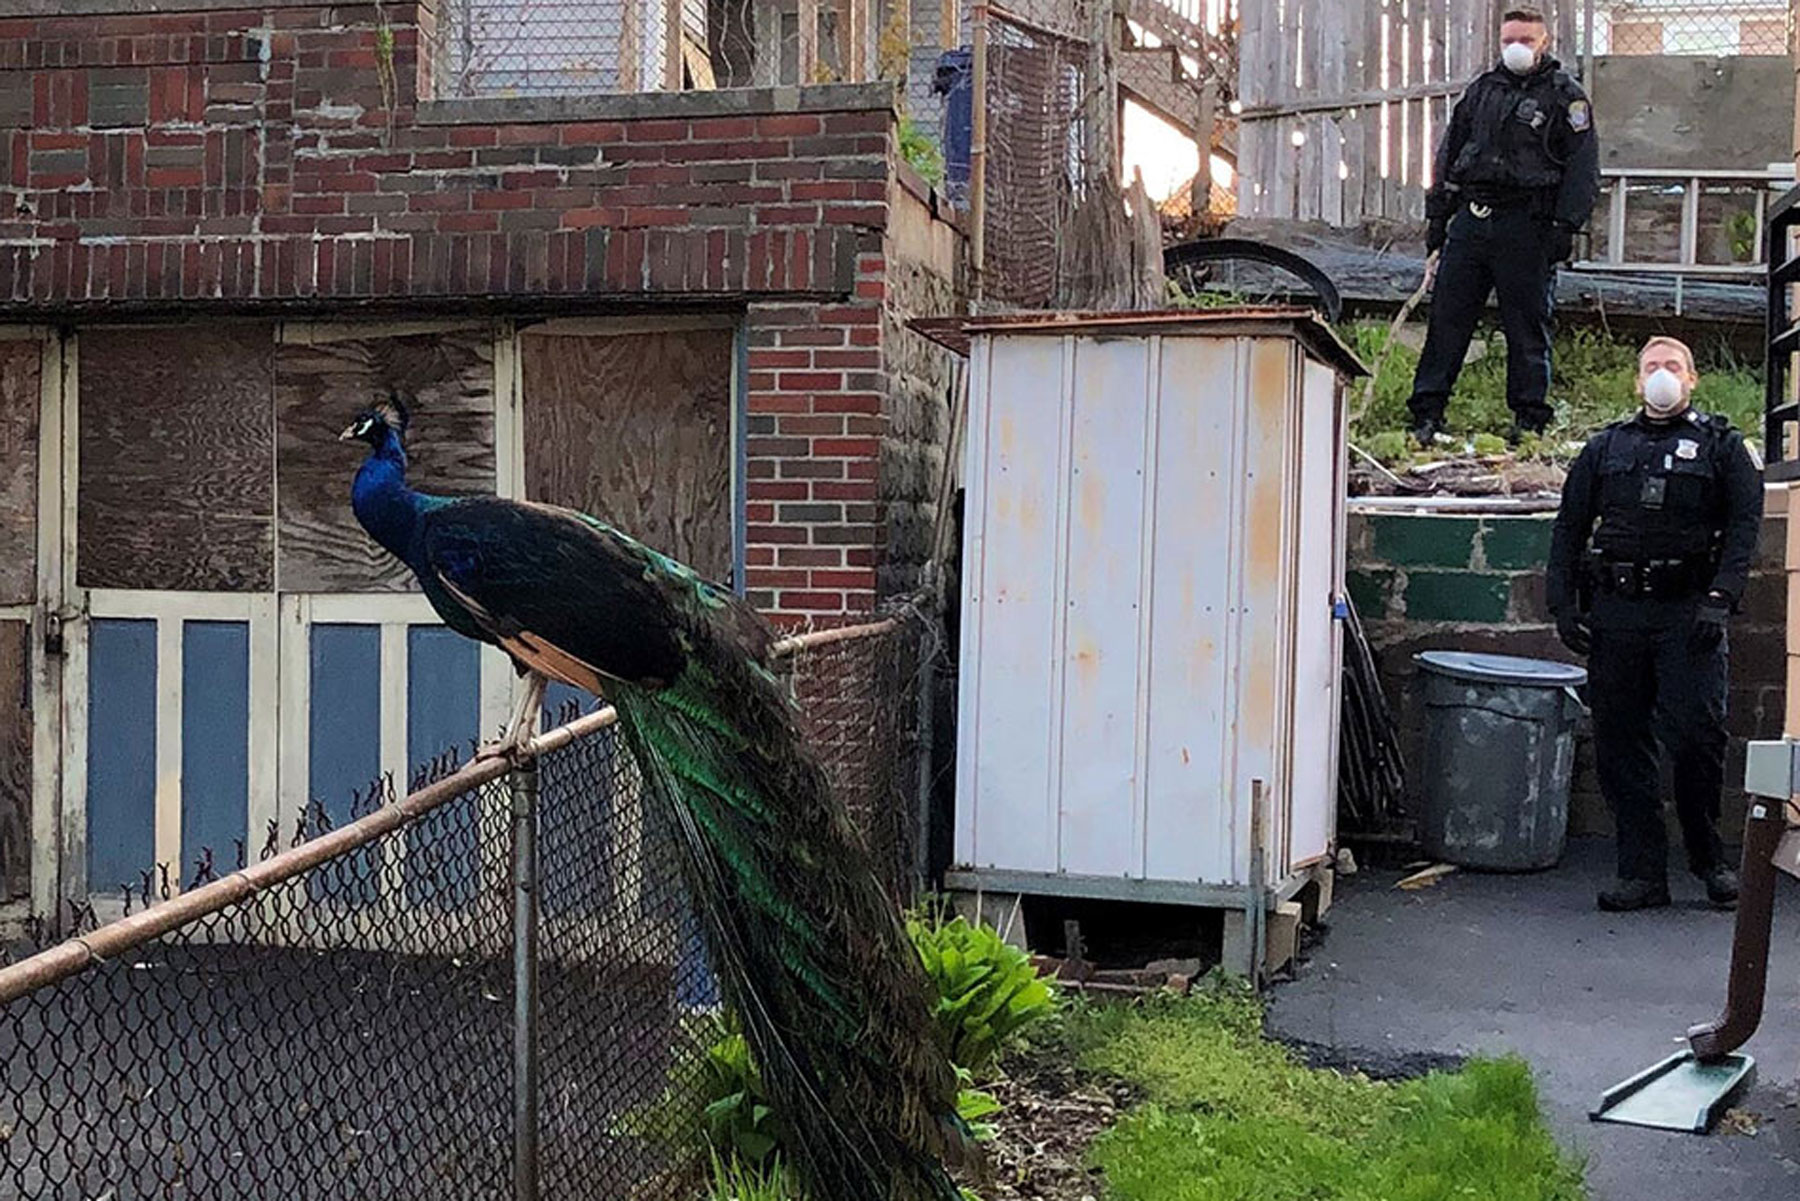 peacock and police officers